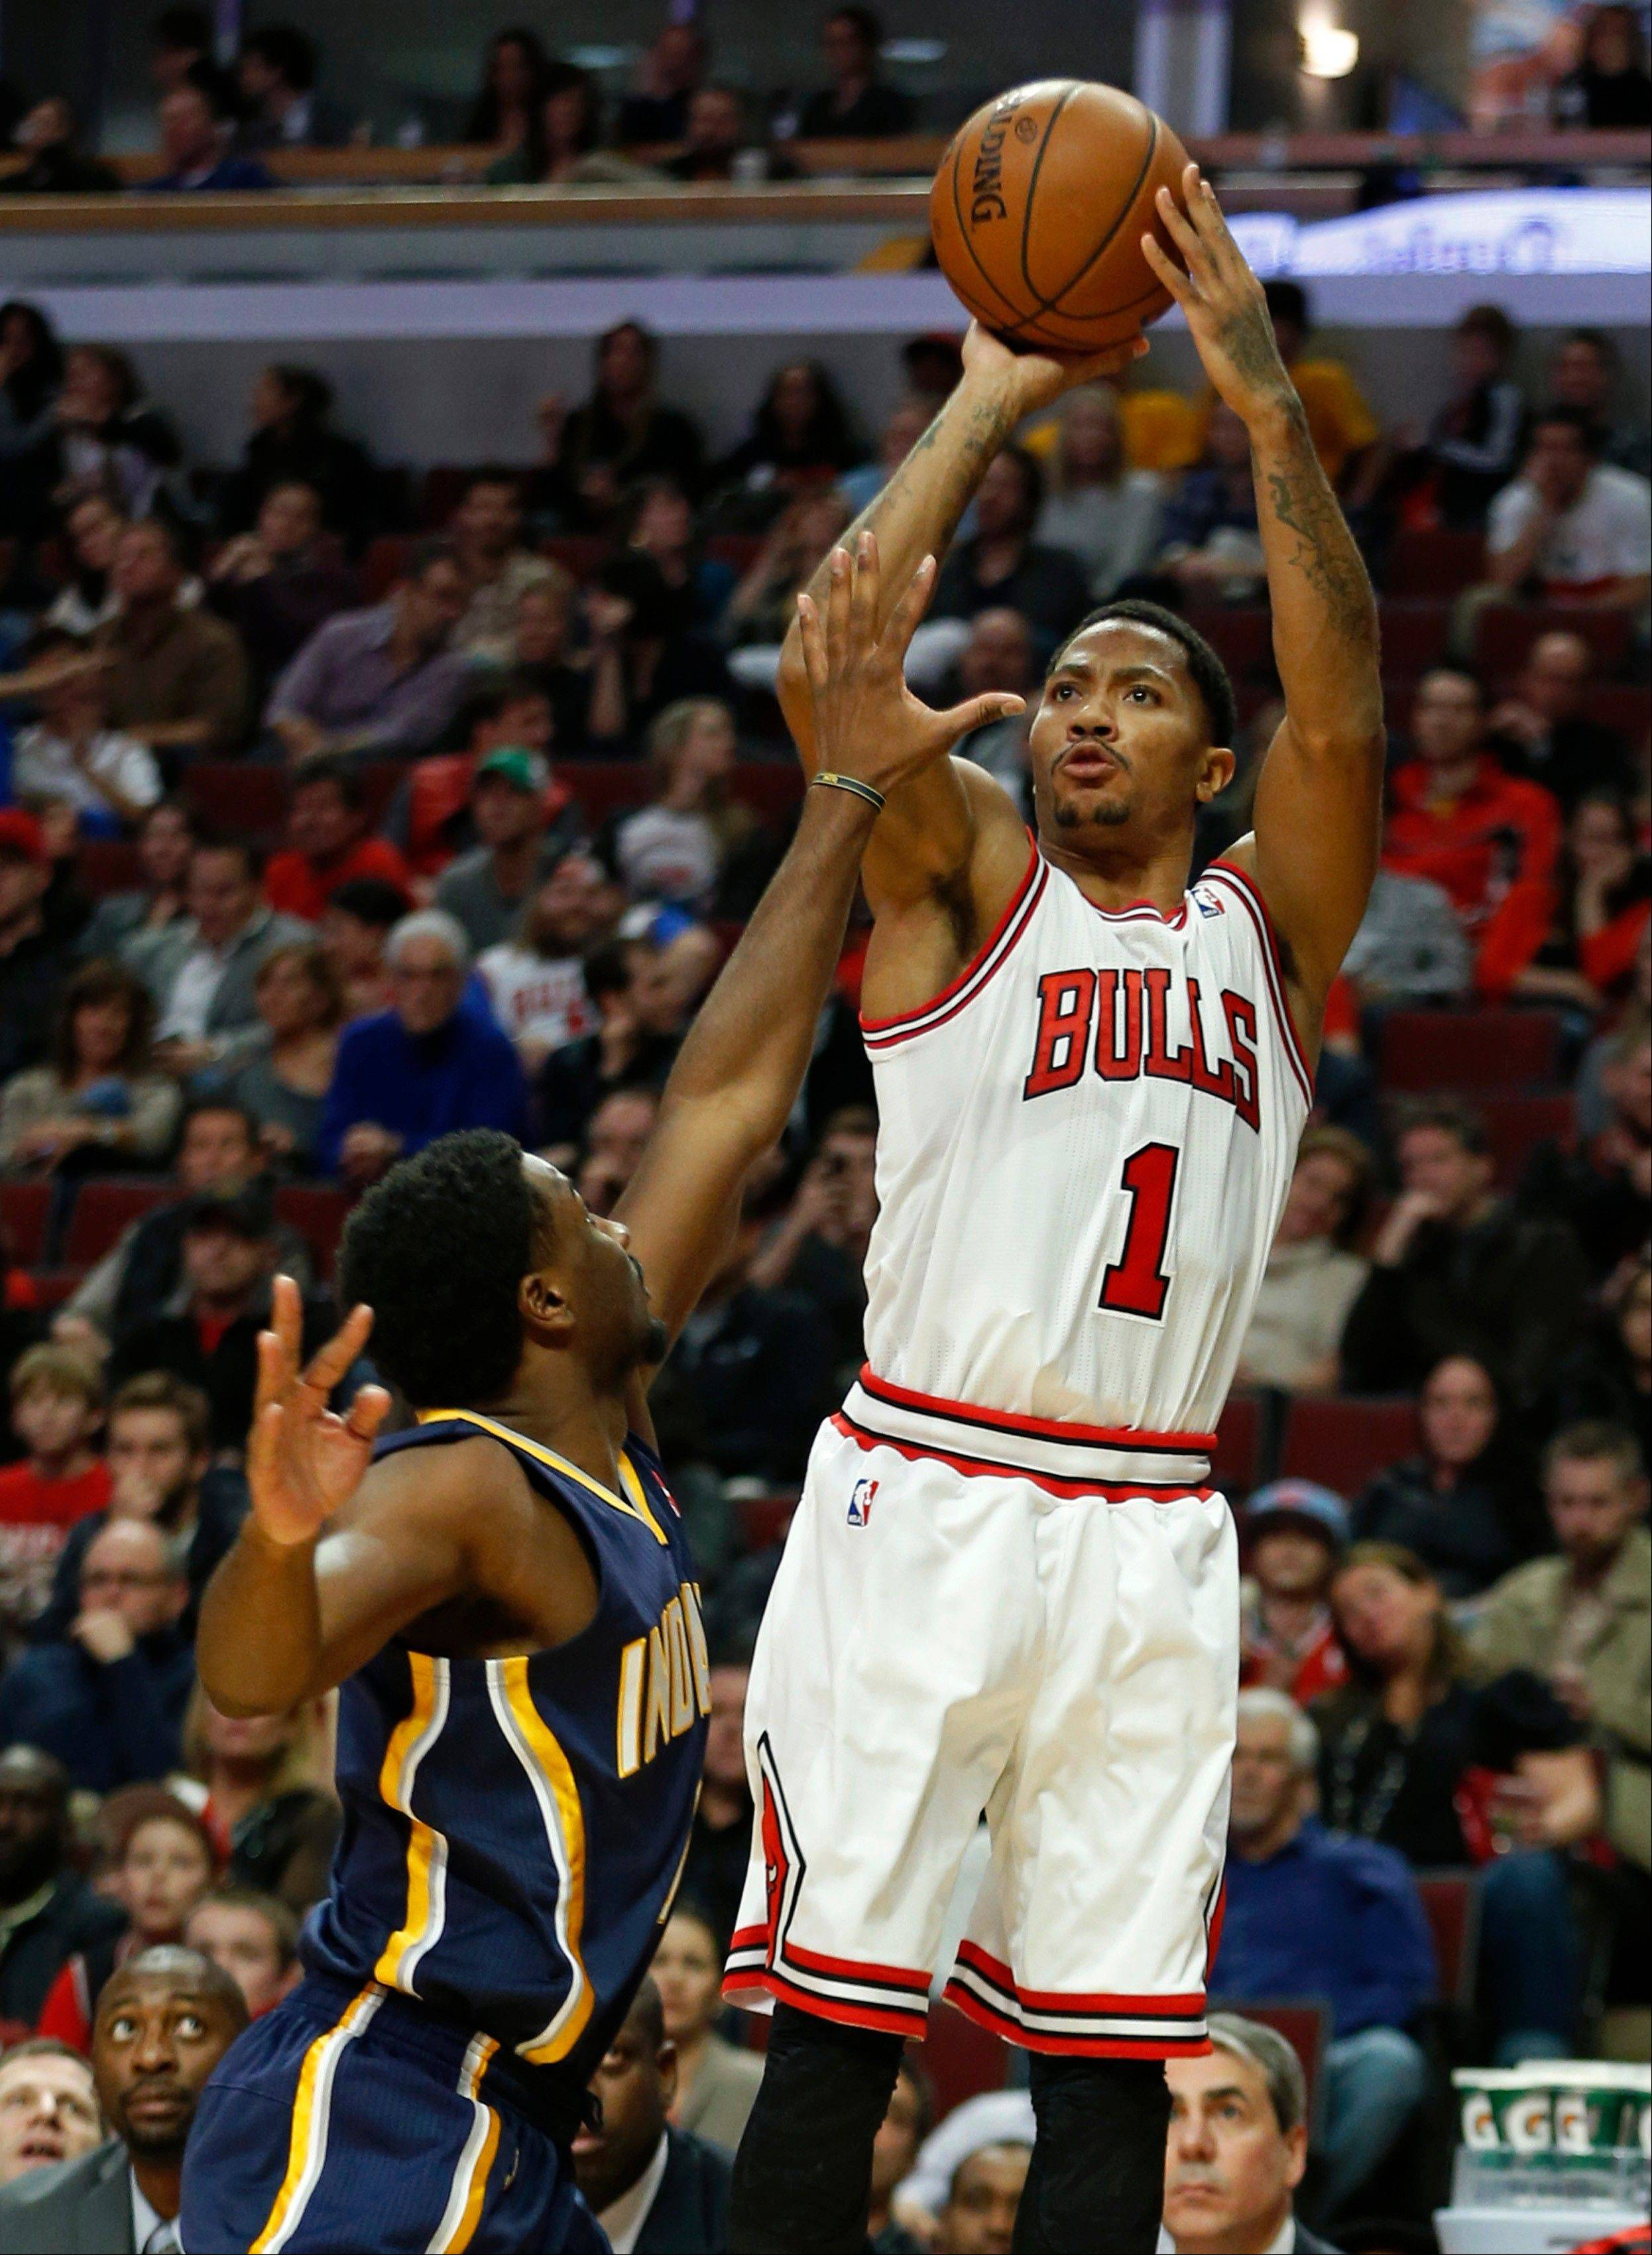 The Bulls� Derrick Rose went 6-for-11 on 3-pointers in Saturday night�s rout of the previously unbeaten Pacers.